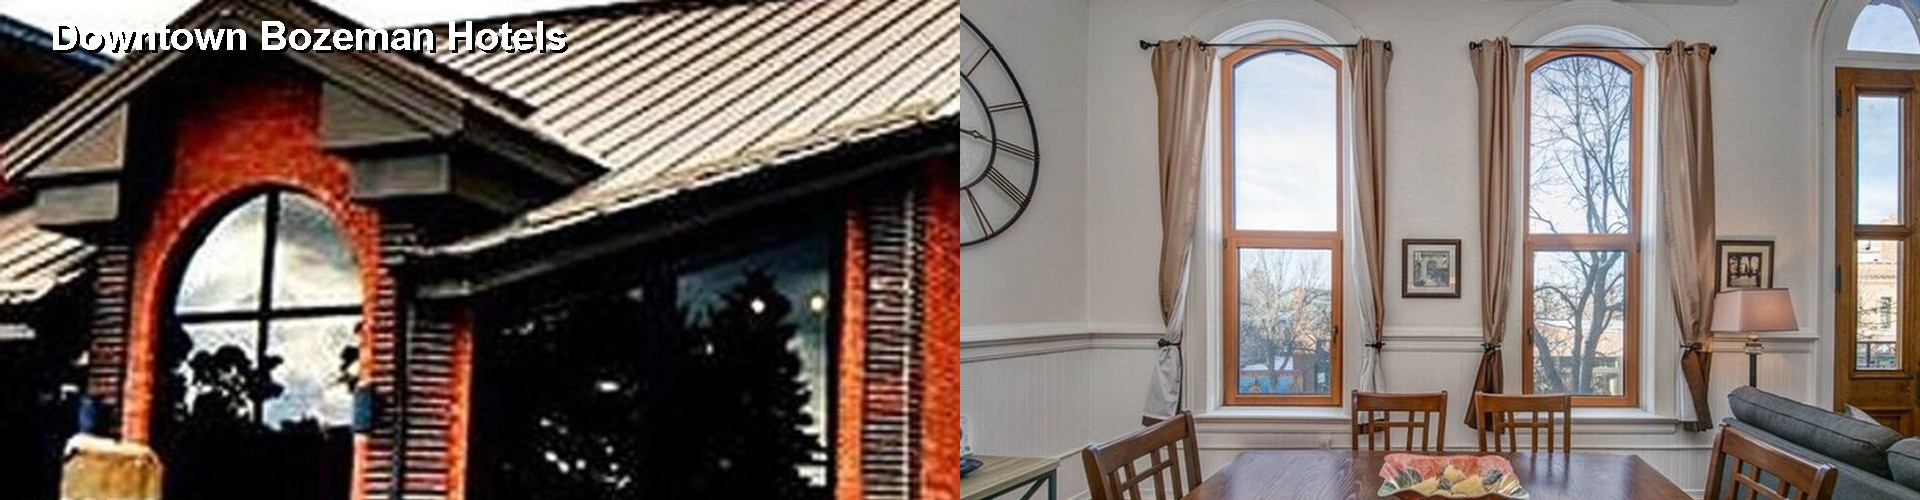 5 Best Hotels near Downtown Bozeman